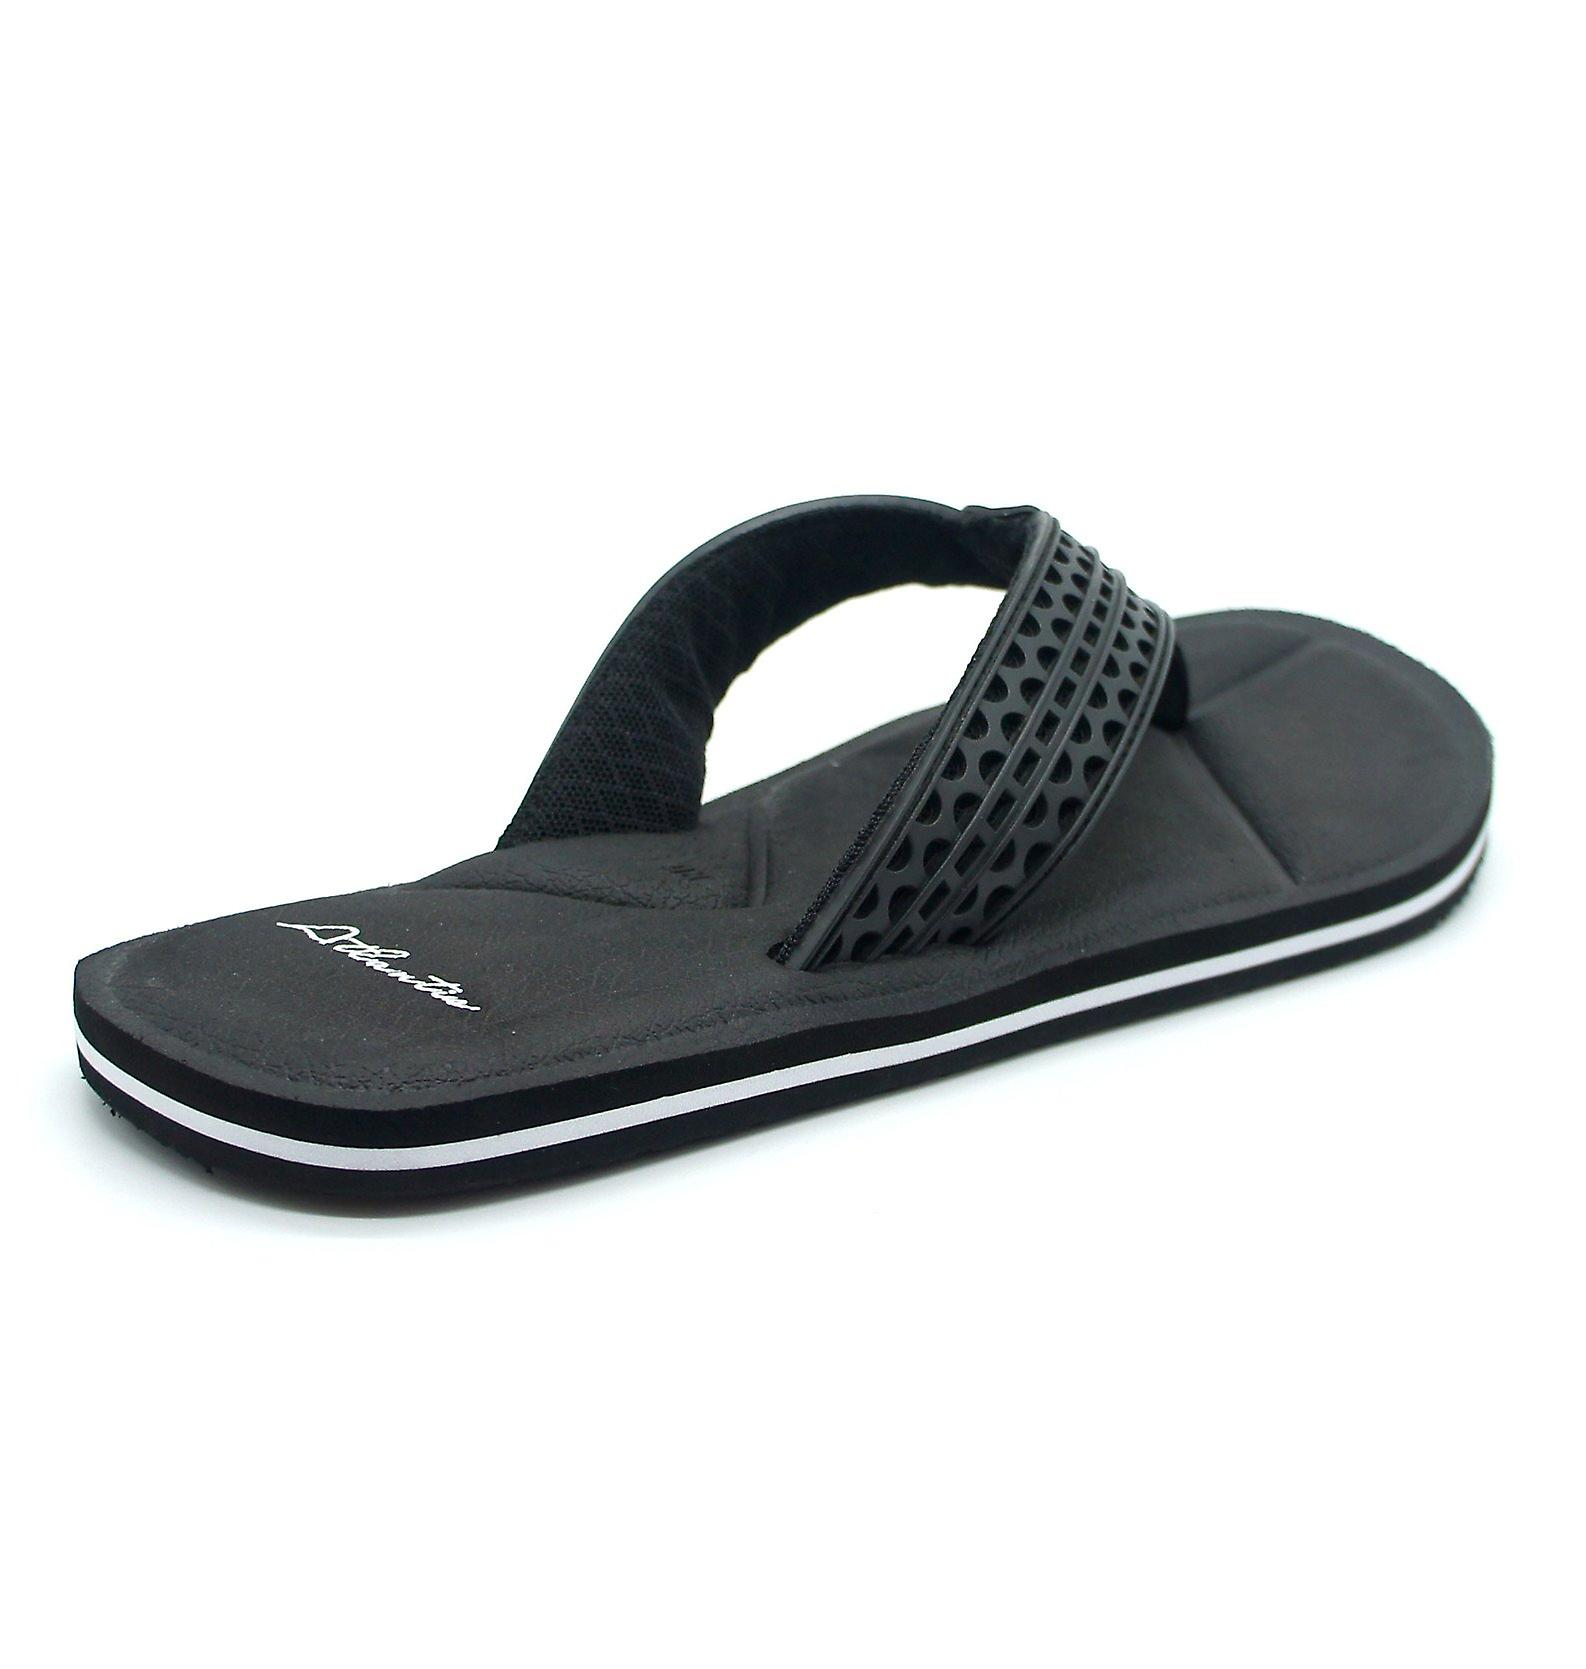 Atlantis Shoes Men Supportive Cushioned Comfortable Sandals Flip Flops Simply Colorful Black